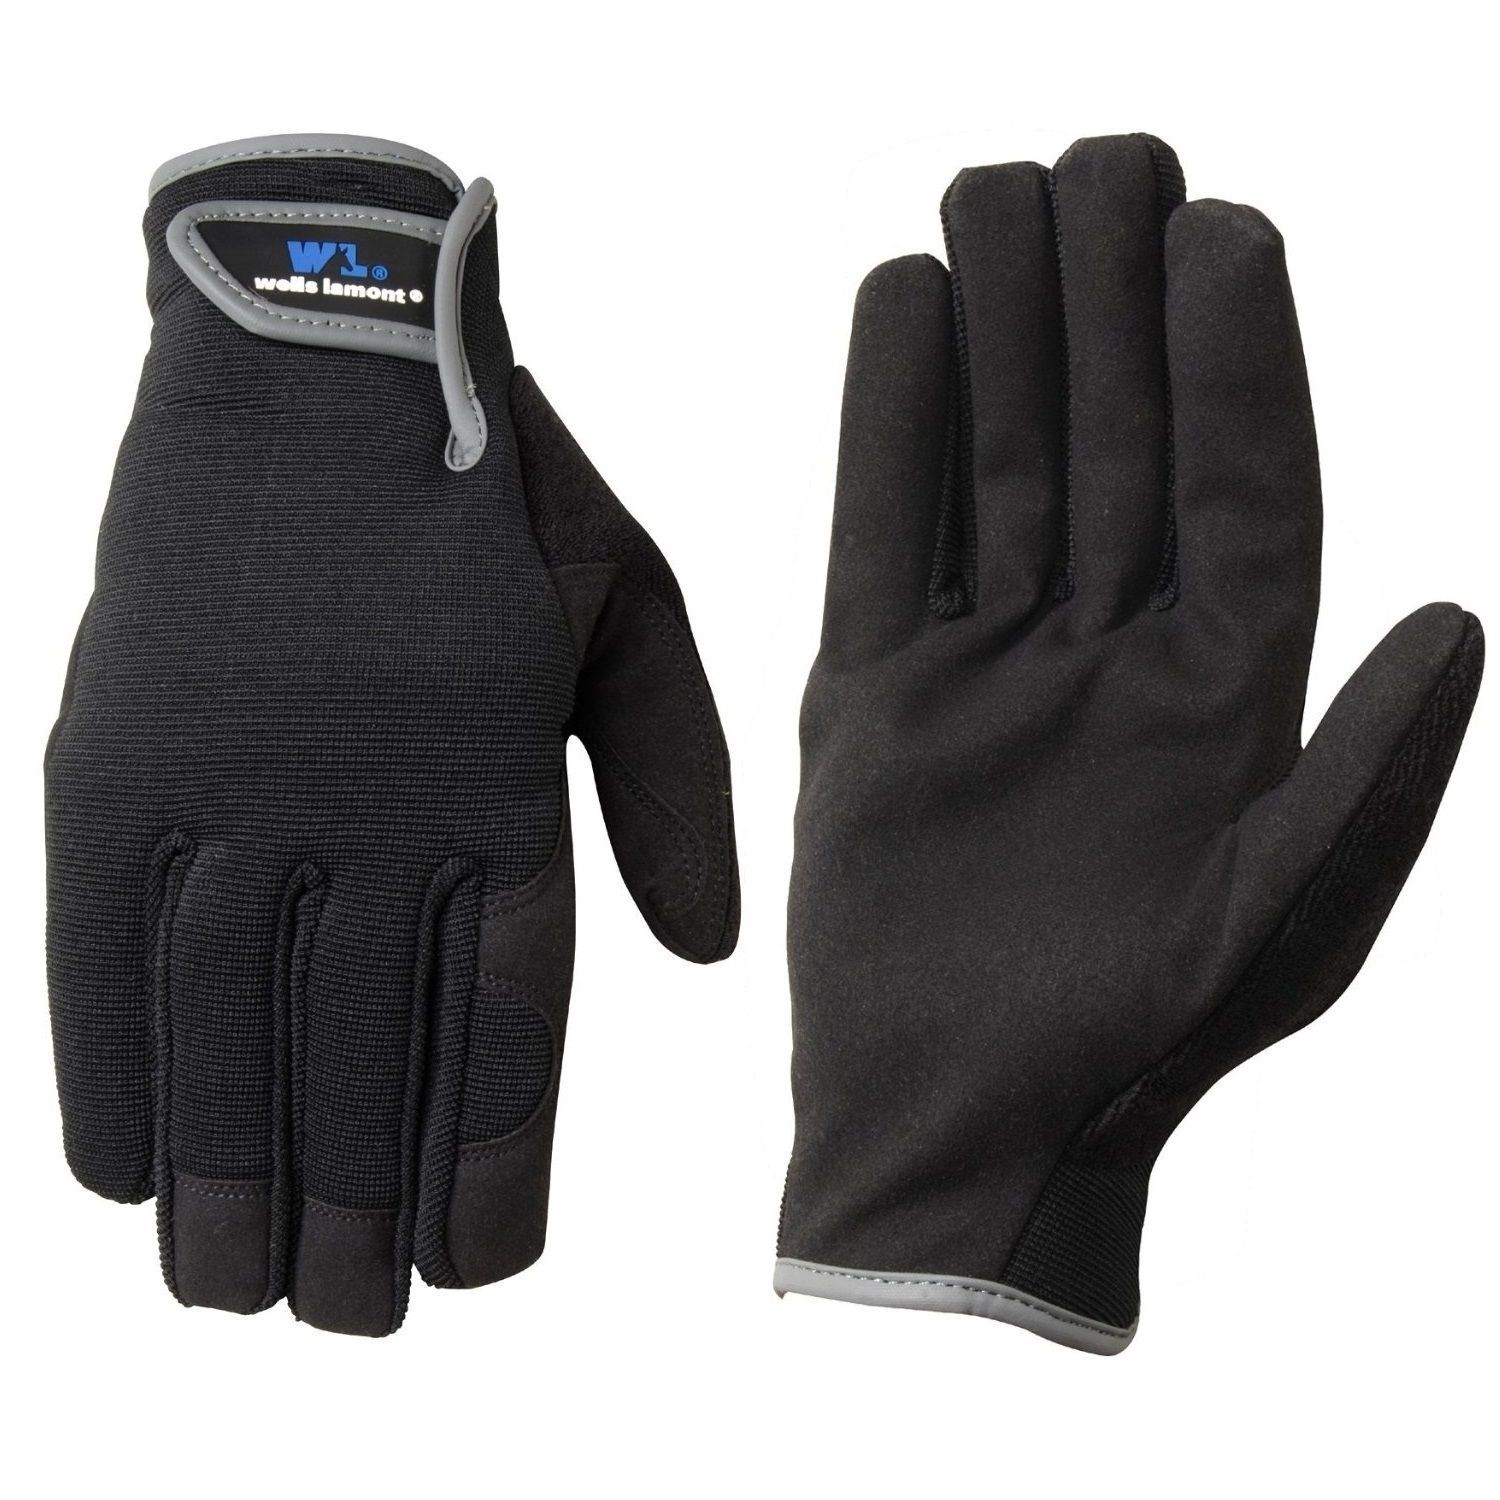 Leather work gloves with thinsulate lining - Wells Lamont Synthetic Leather Work Gloves For Mens